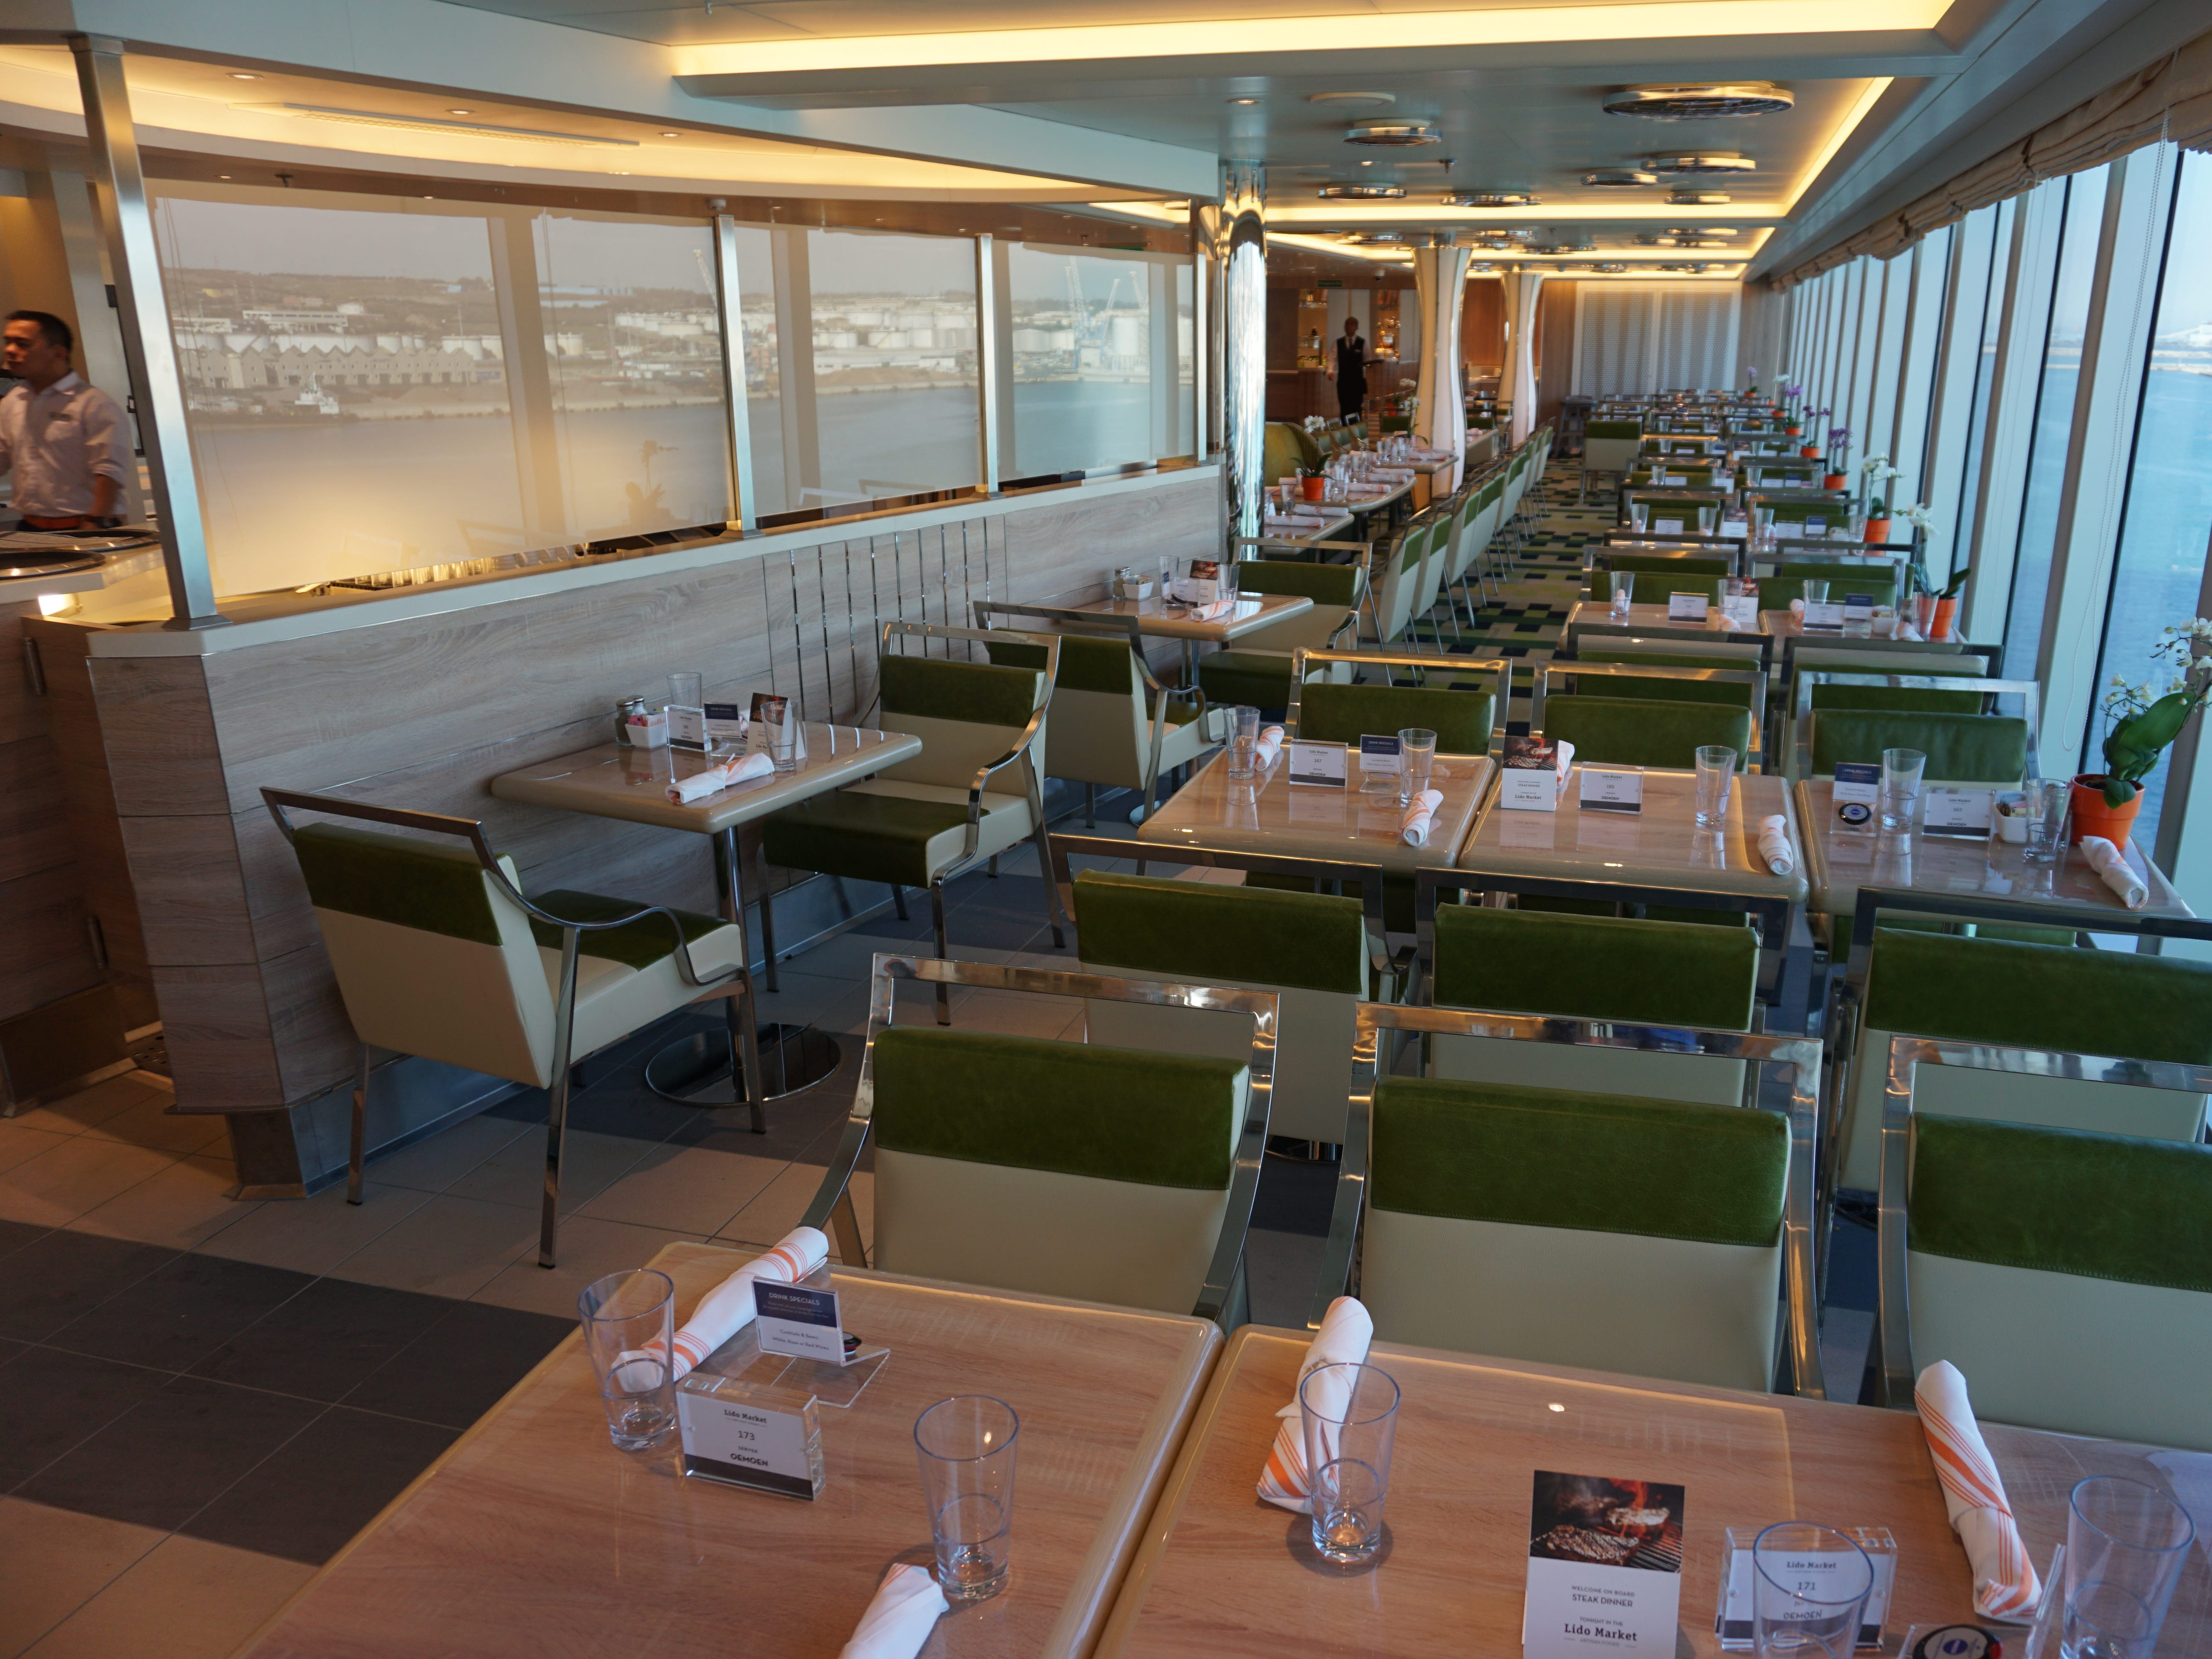 The 654-seat Lido Market is Nieuw Statendam's casual, included-in-the-fare eatery with a variety of food stations.